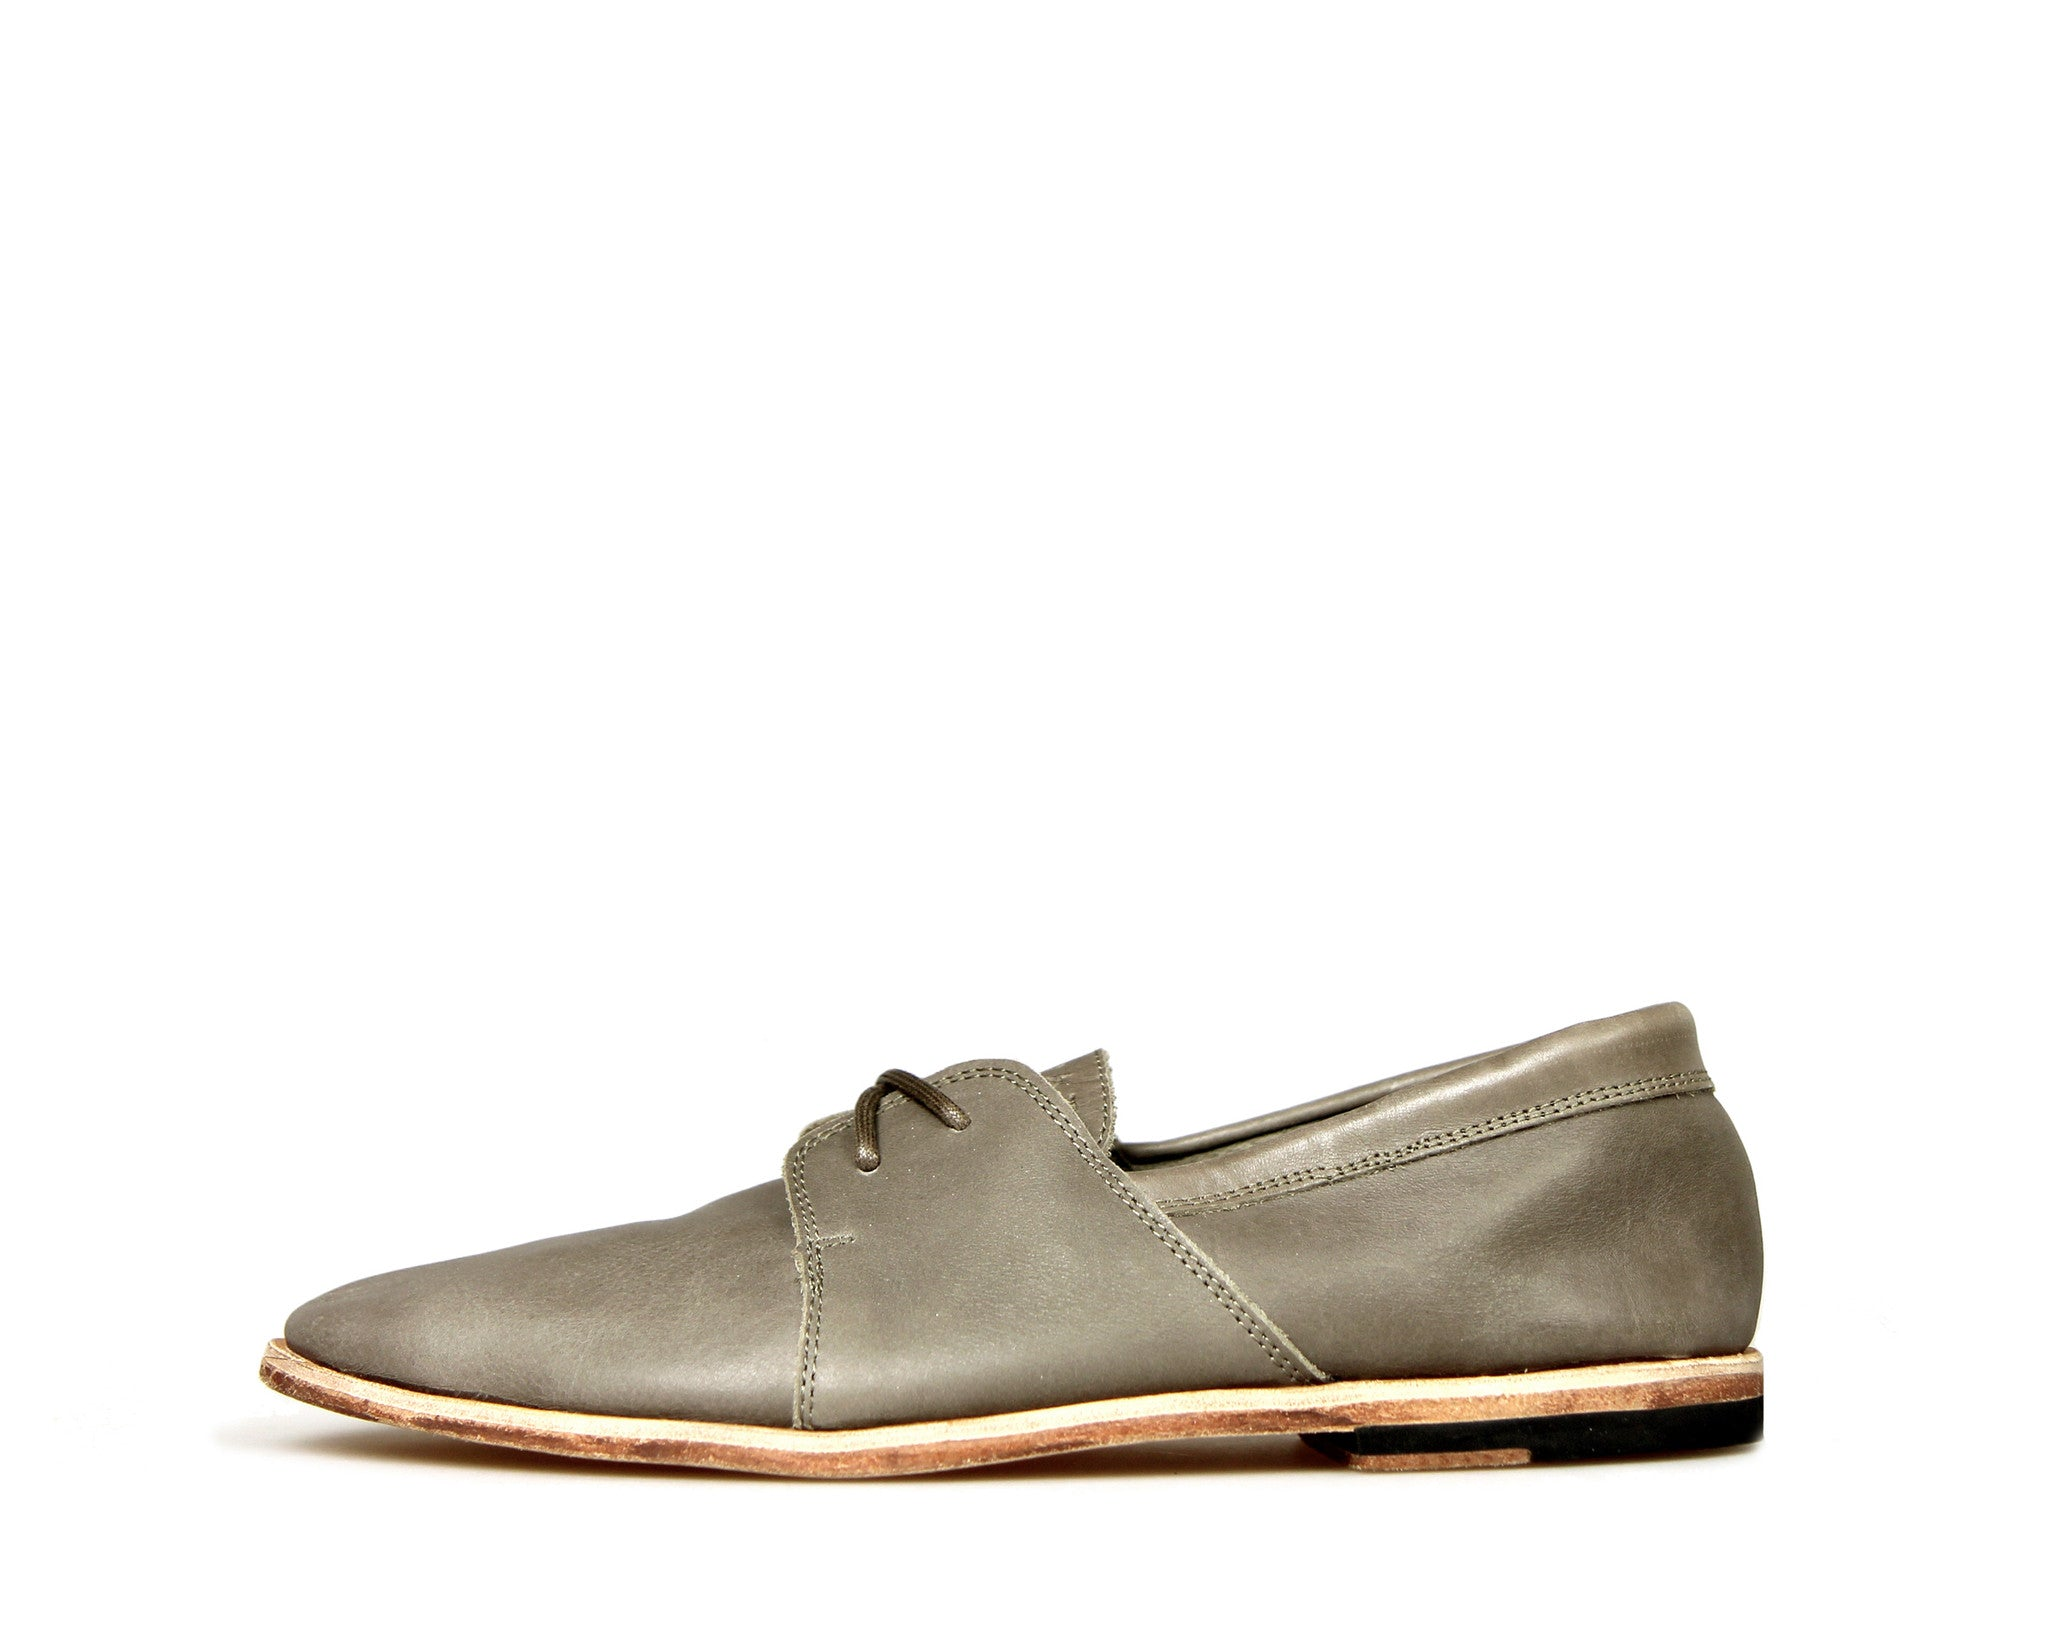 Bluto - Ash - Leather sole